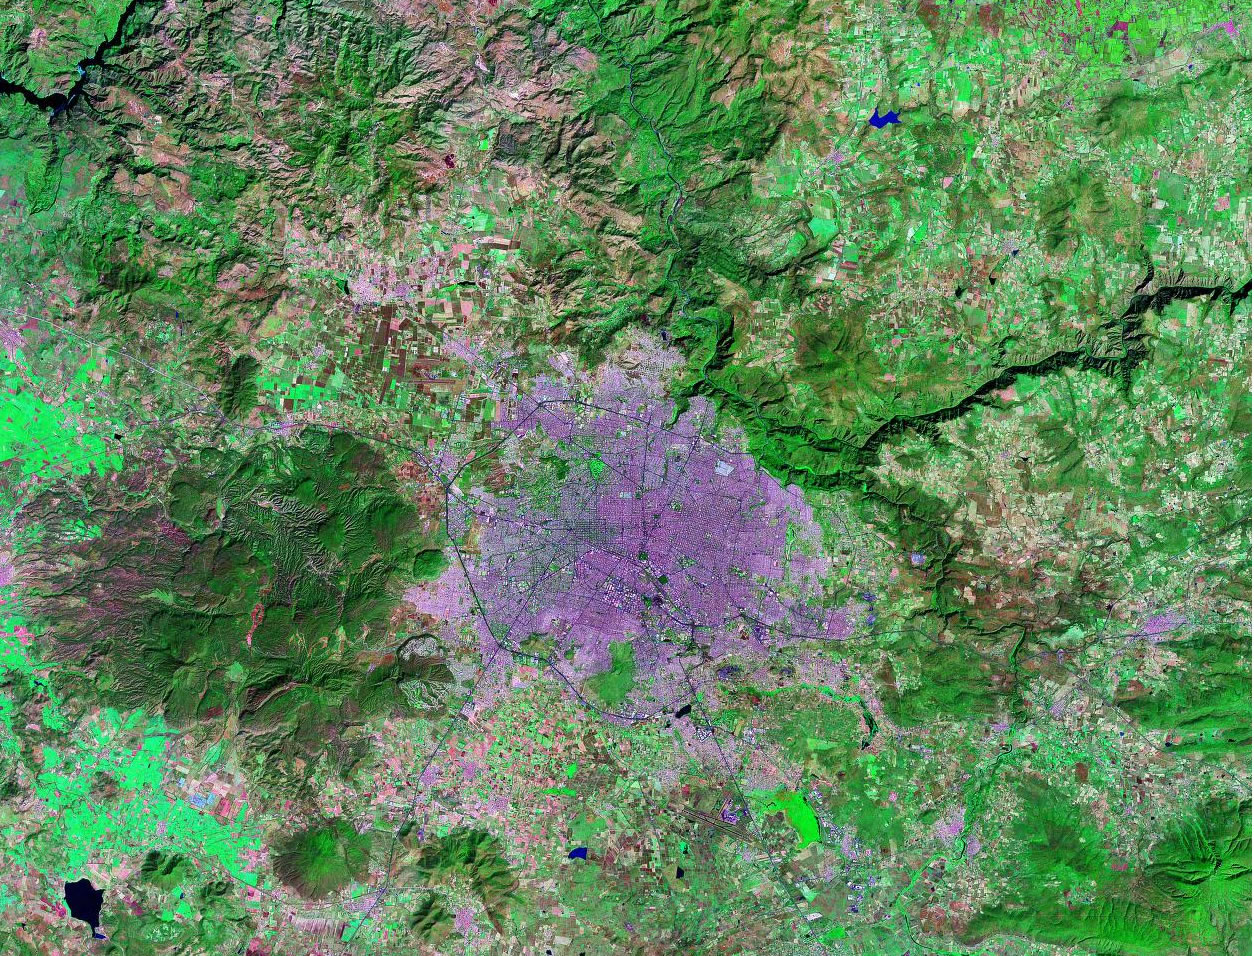 Guadalajara Mexico satellite image map